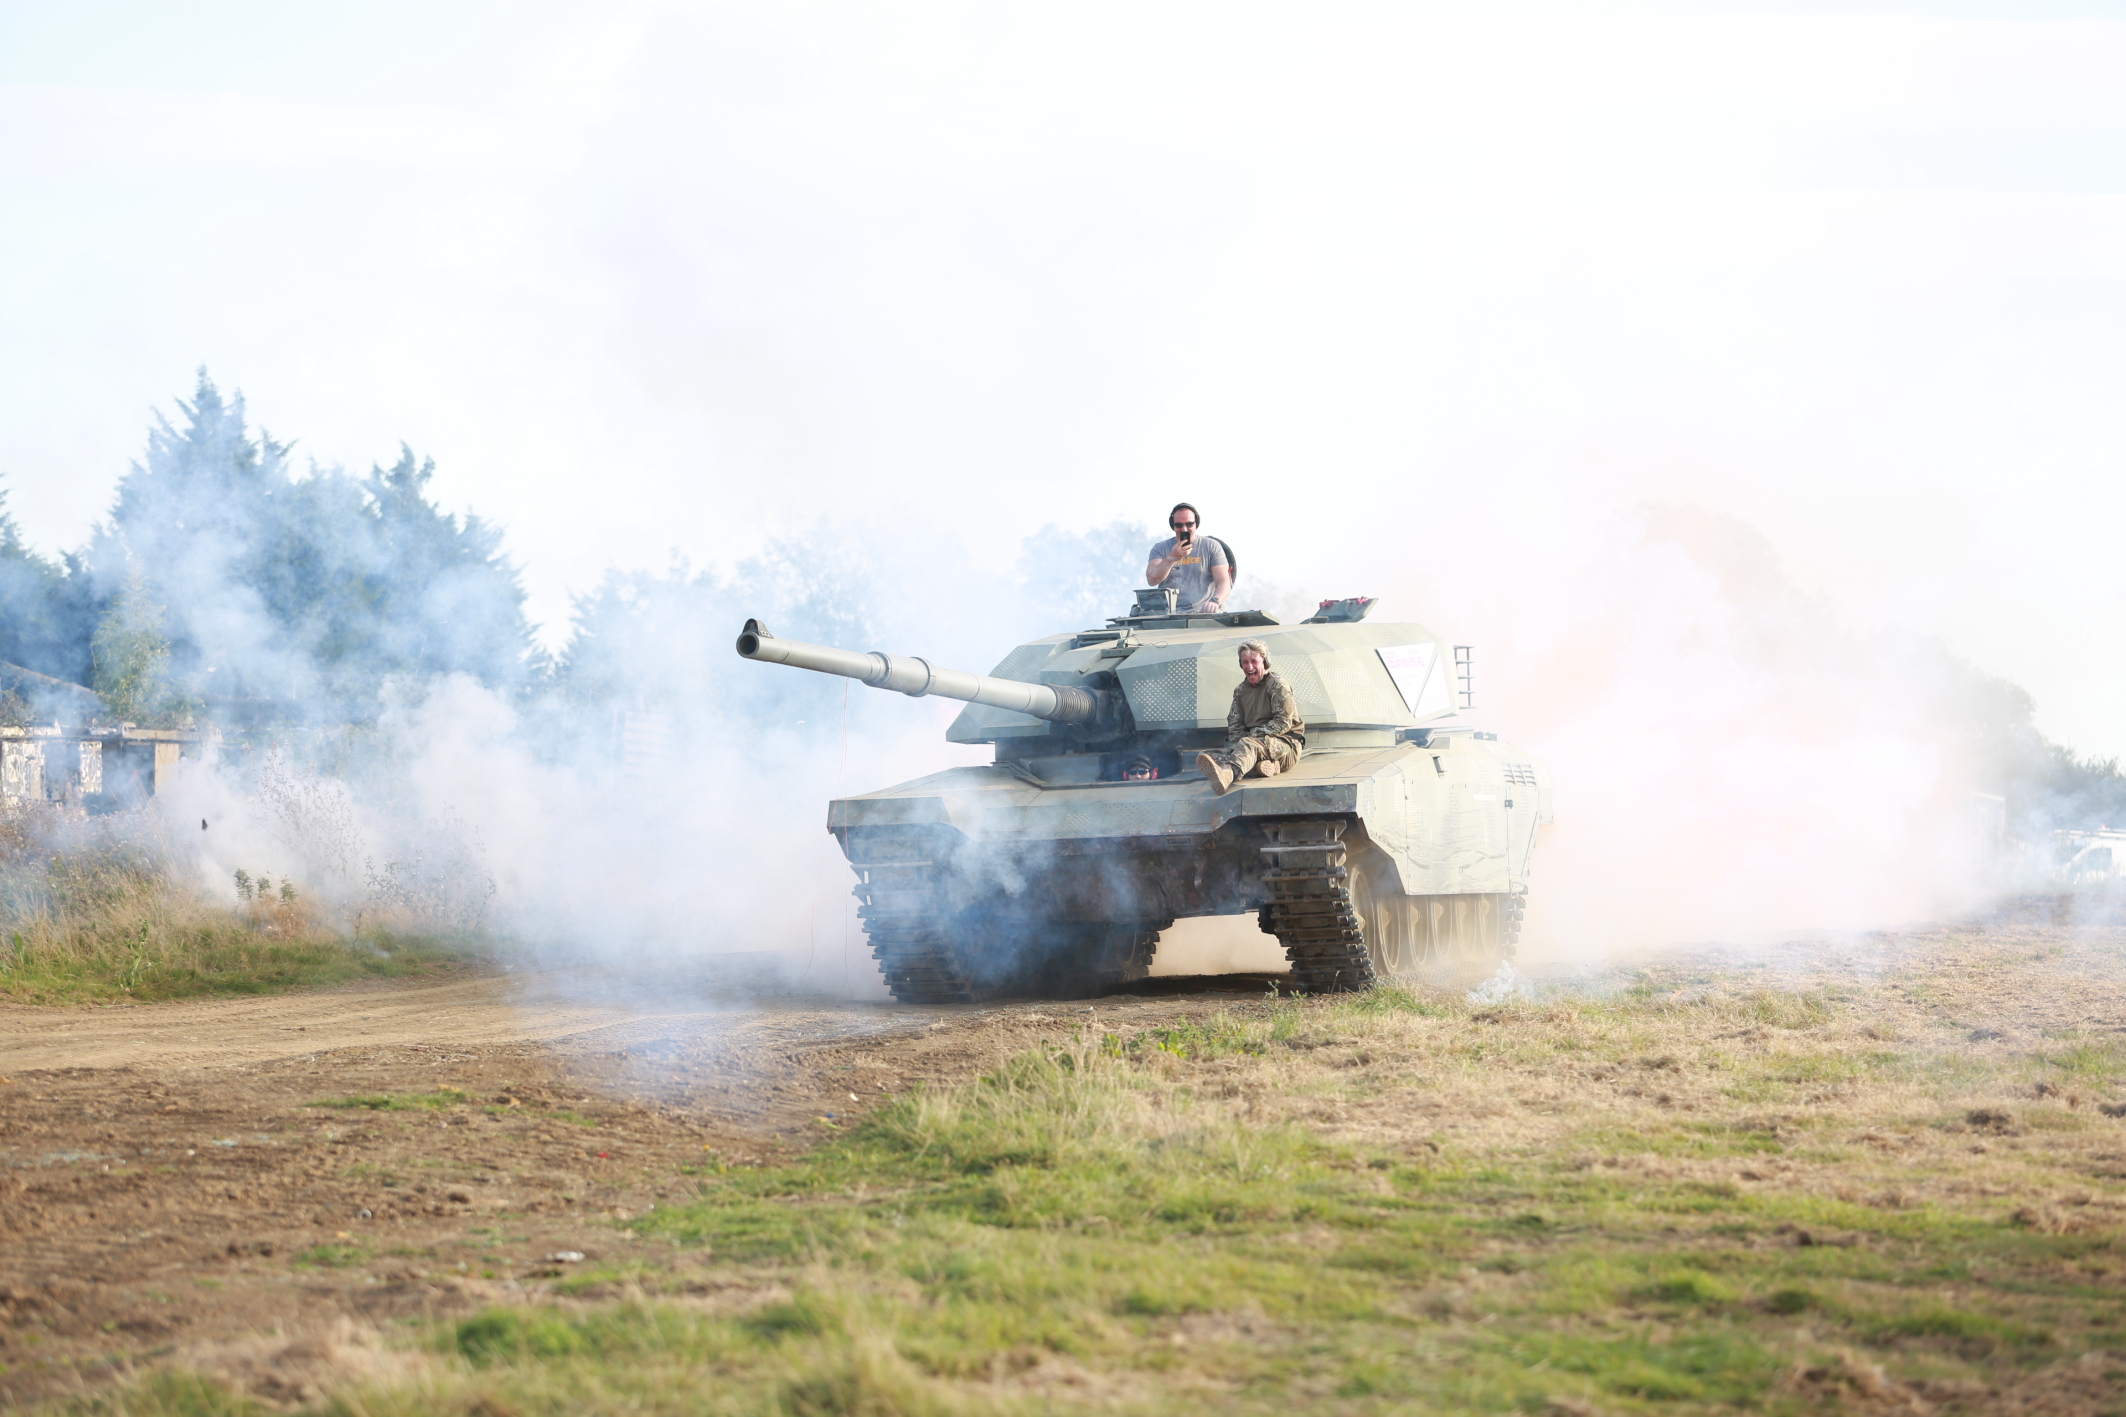 A tank is driving towards camera through an atmospheric, smoke-filled field